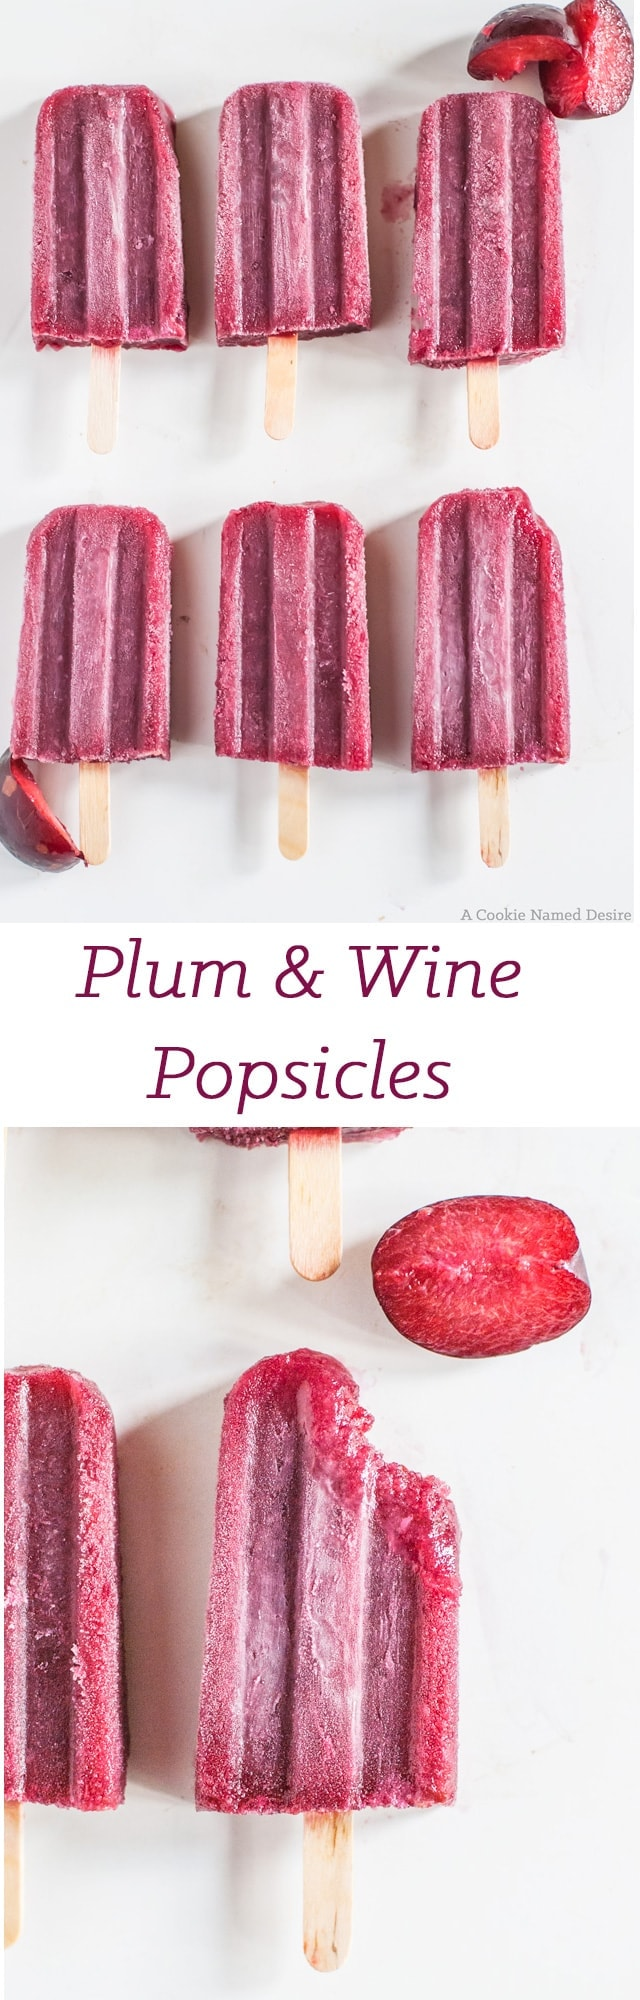 Plum and wine popsicles - the perfect adult summer treat